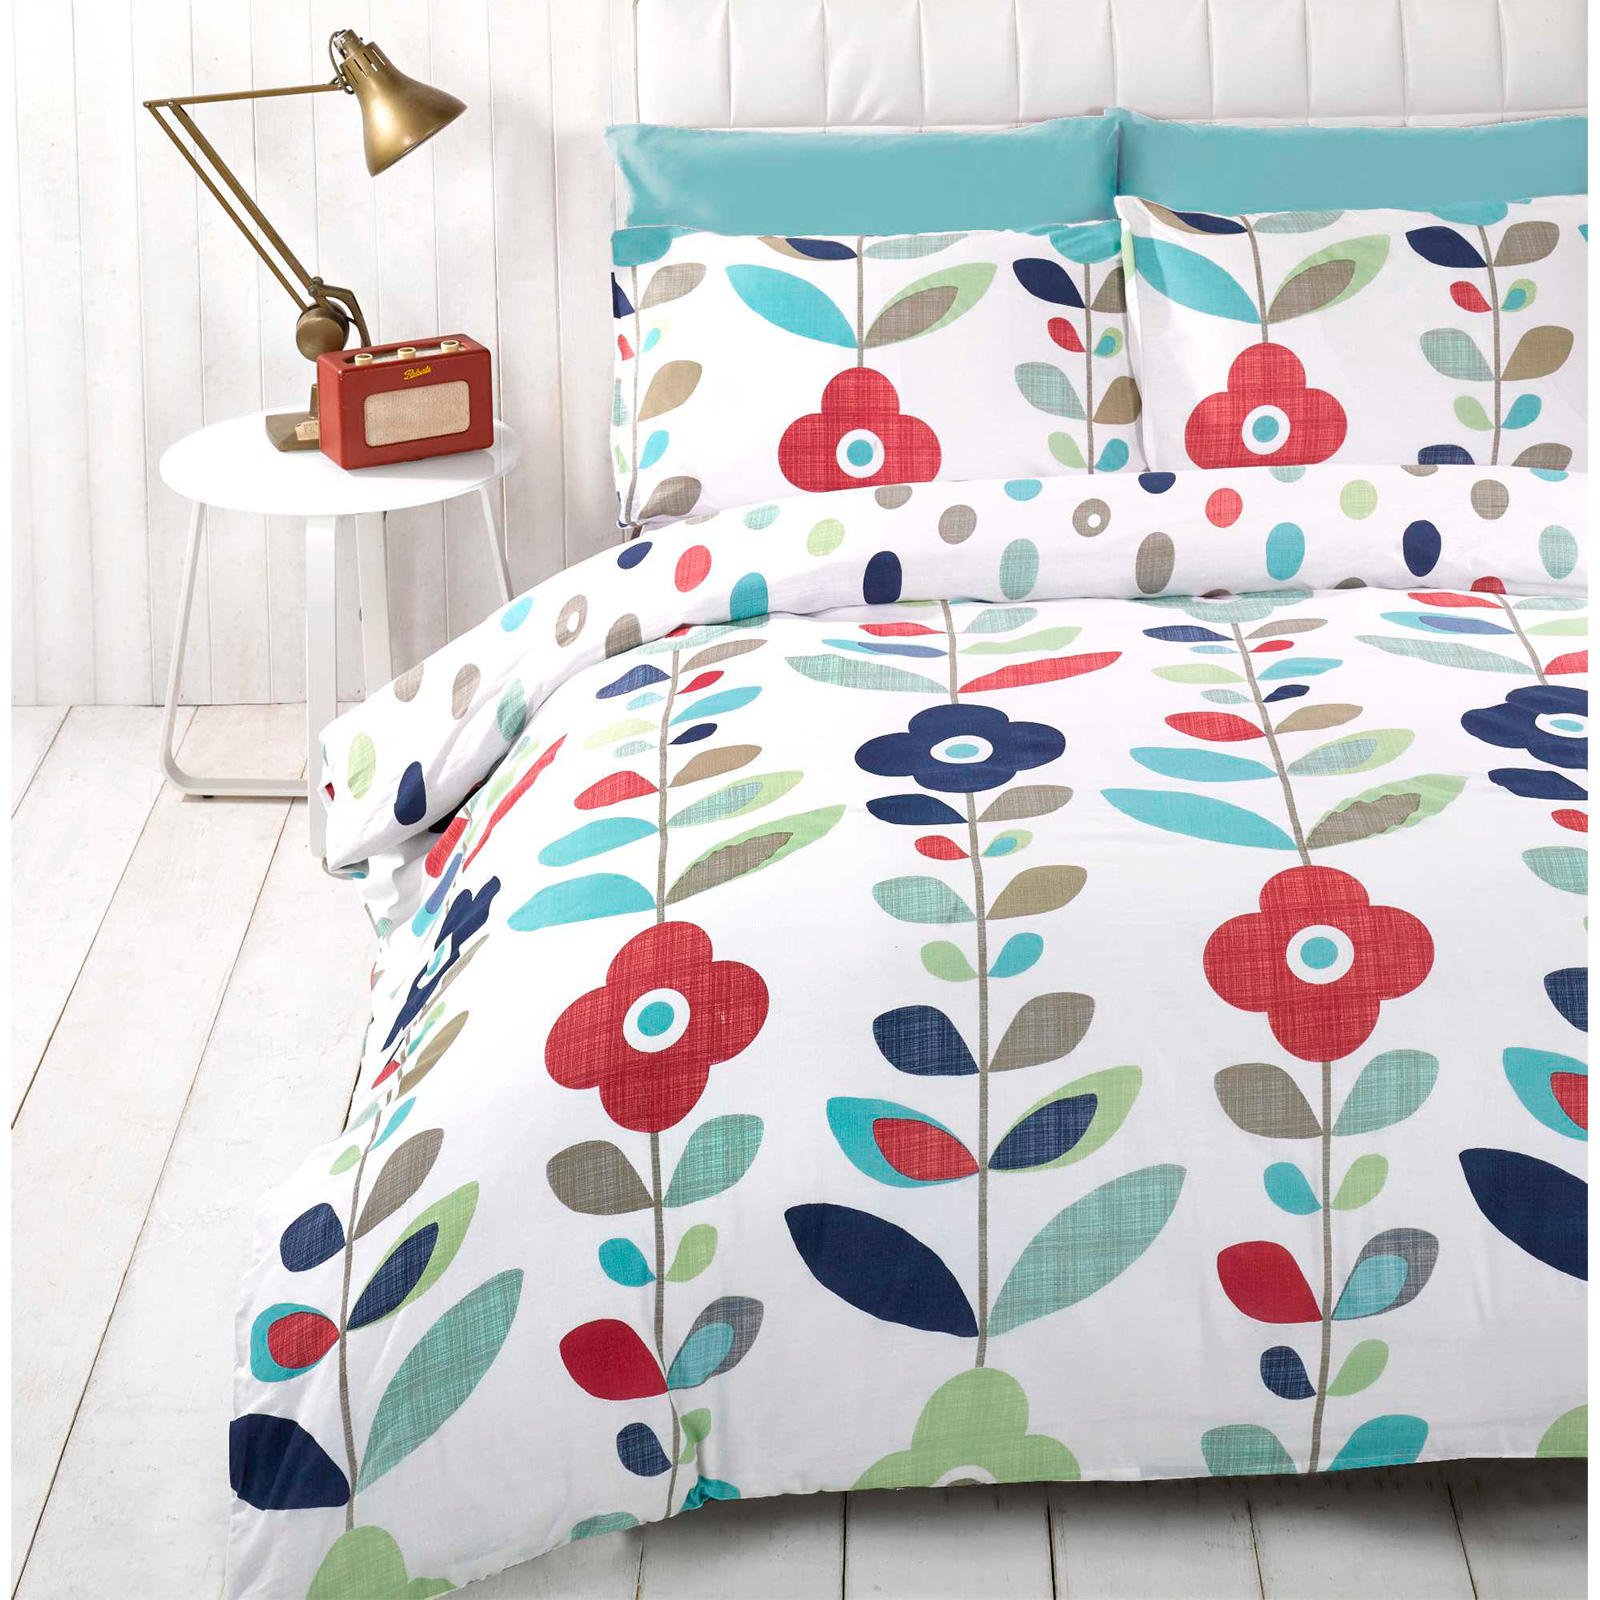 Retro Floral Duvet Cover - Reversible Bedding Cotton Rich ...